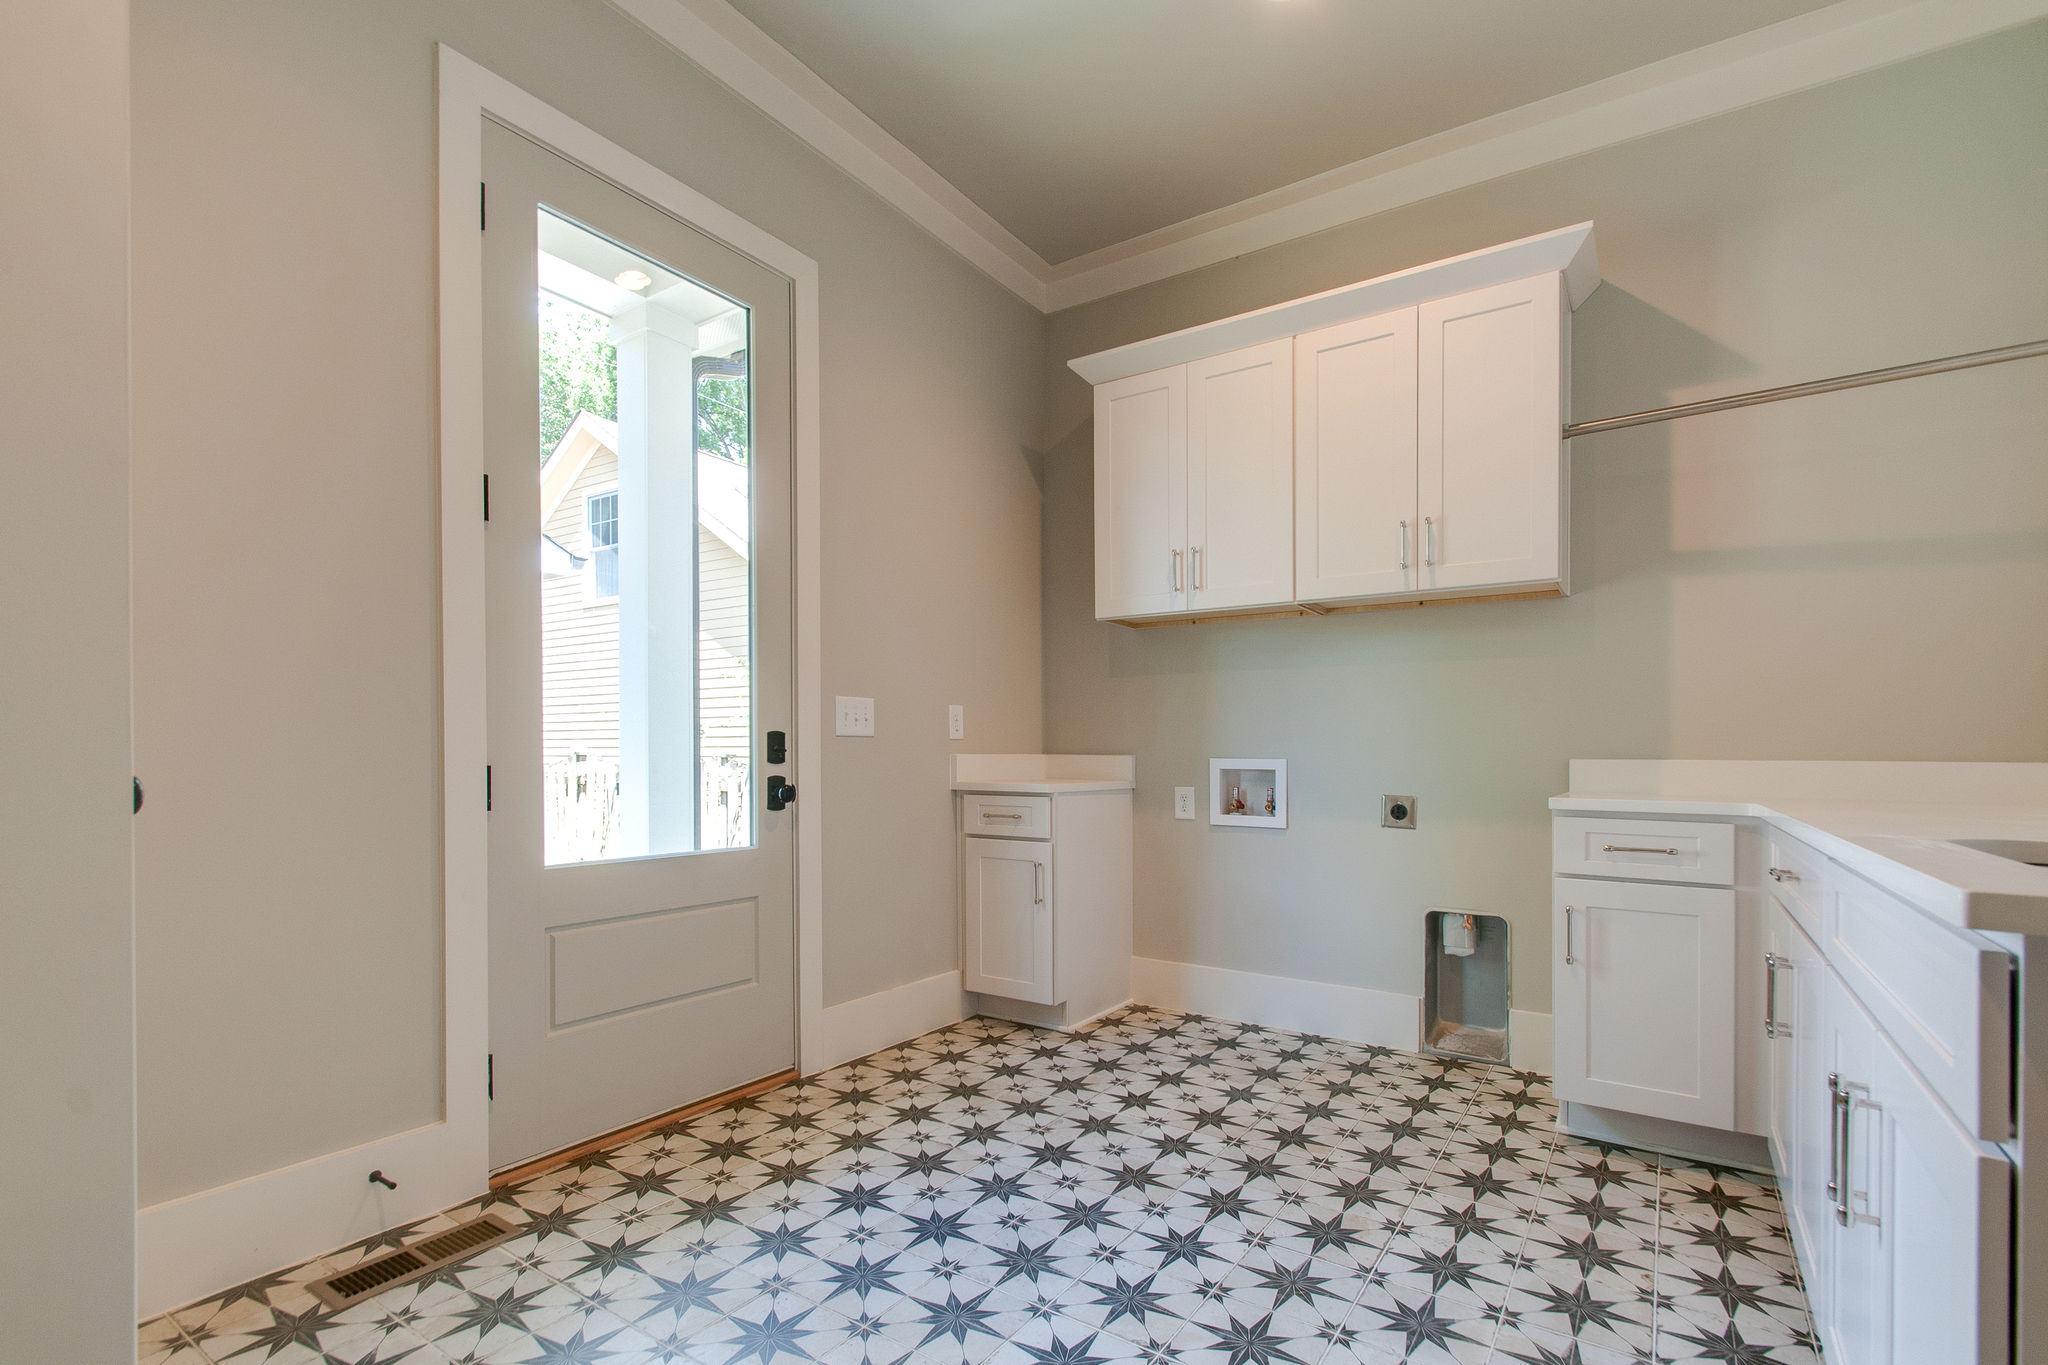 New Homes with laundry room in Franklin, Brentwood, and Thompson Station TN with Custom Home Design